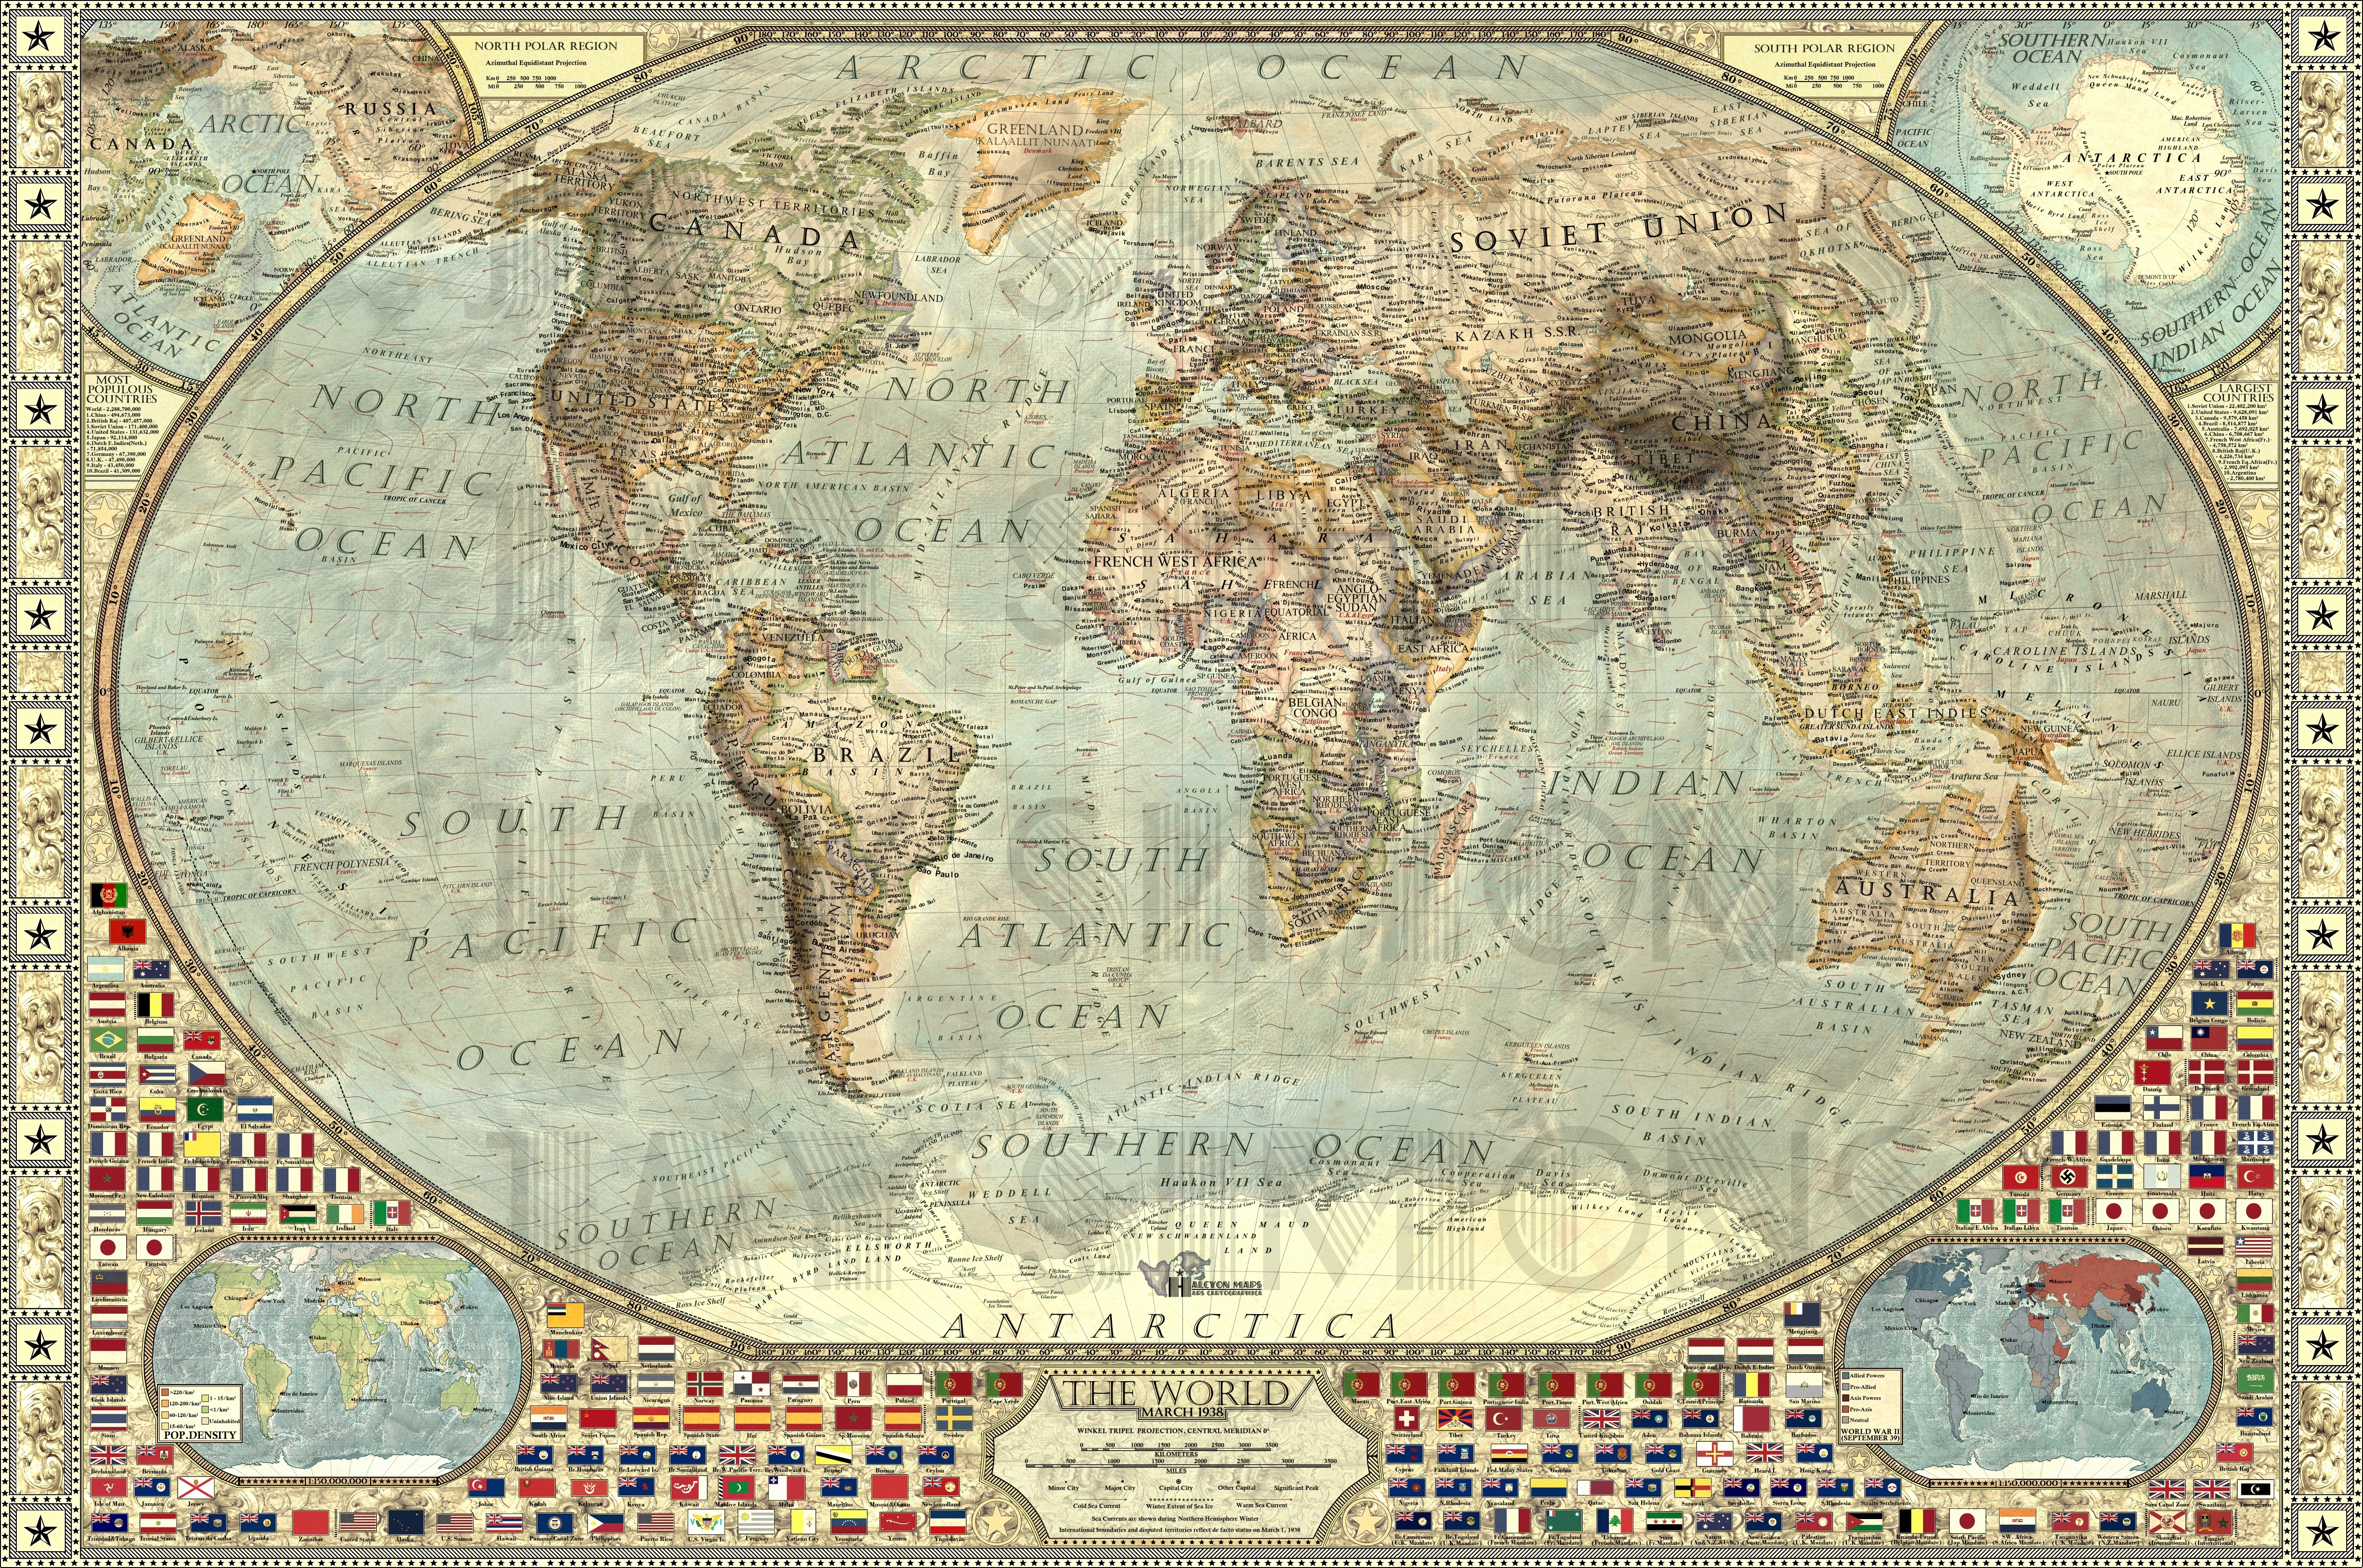 The world 1938 by jaysimons on deviantart the world 1938 by jaysimons gumiabroncs